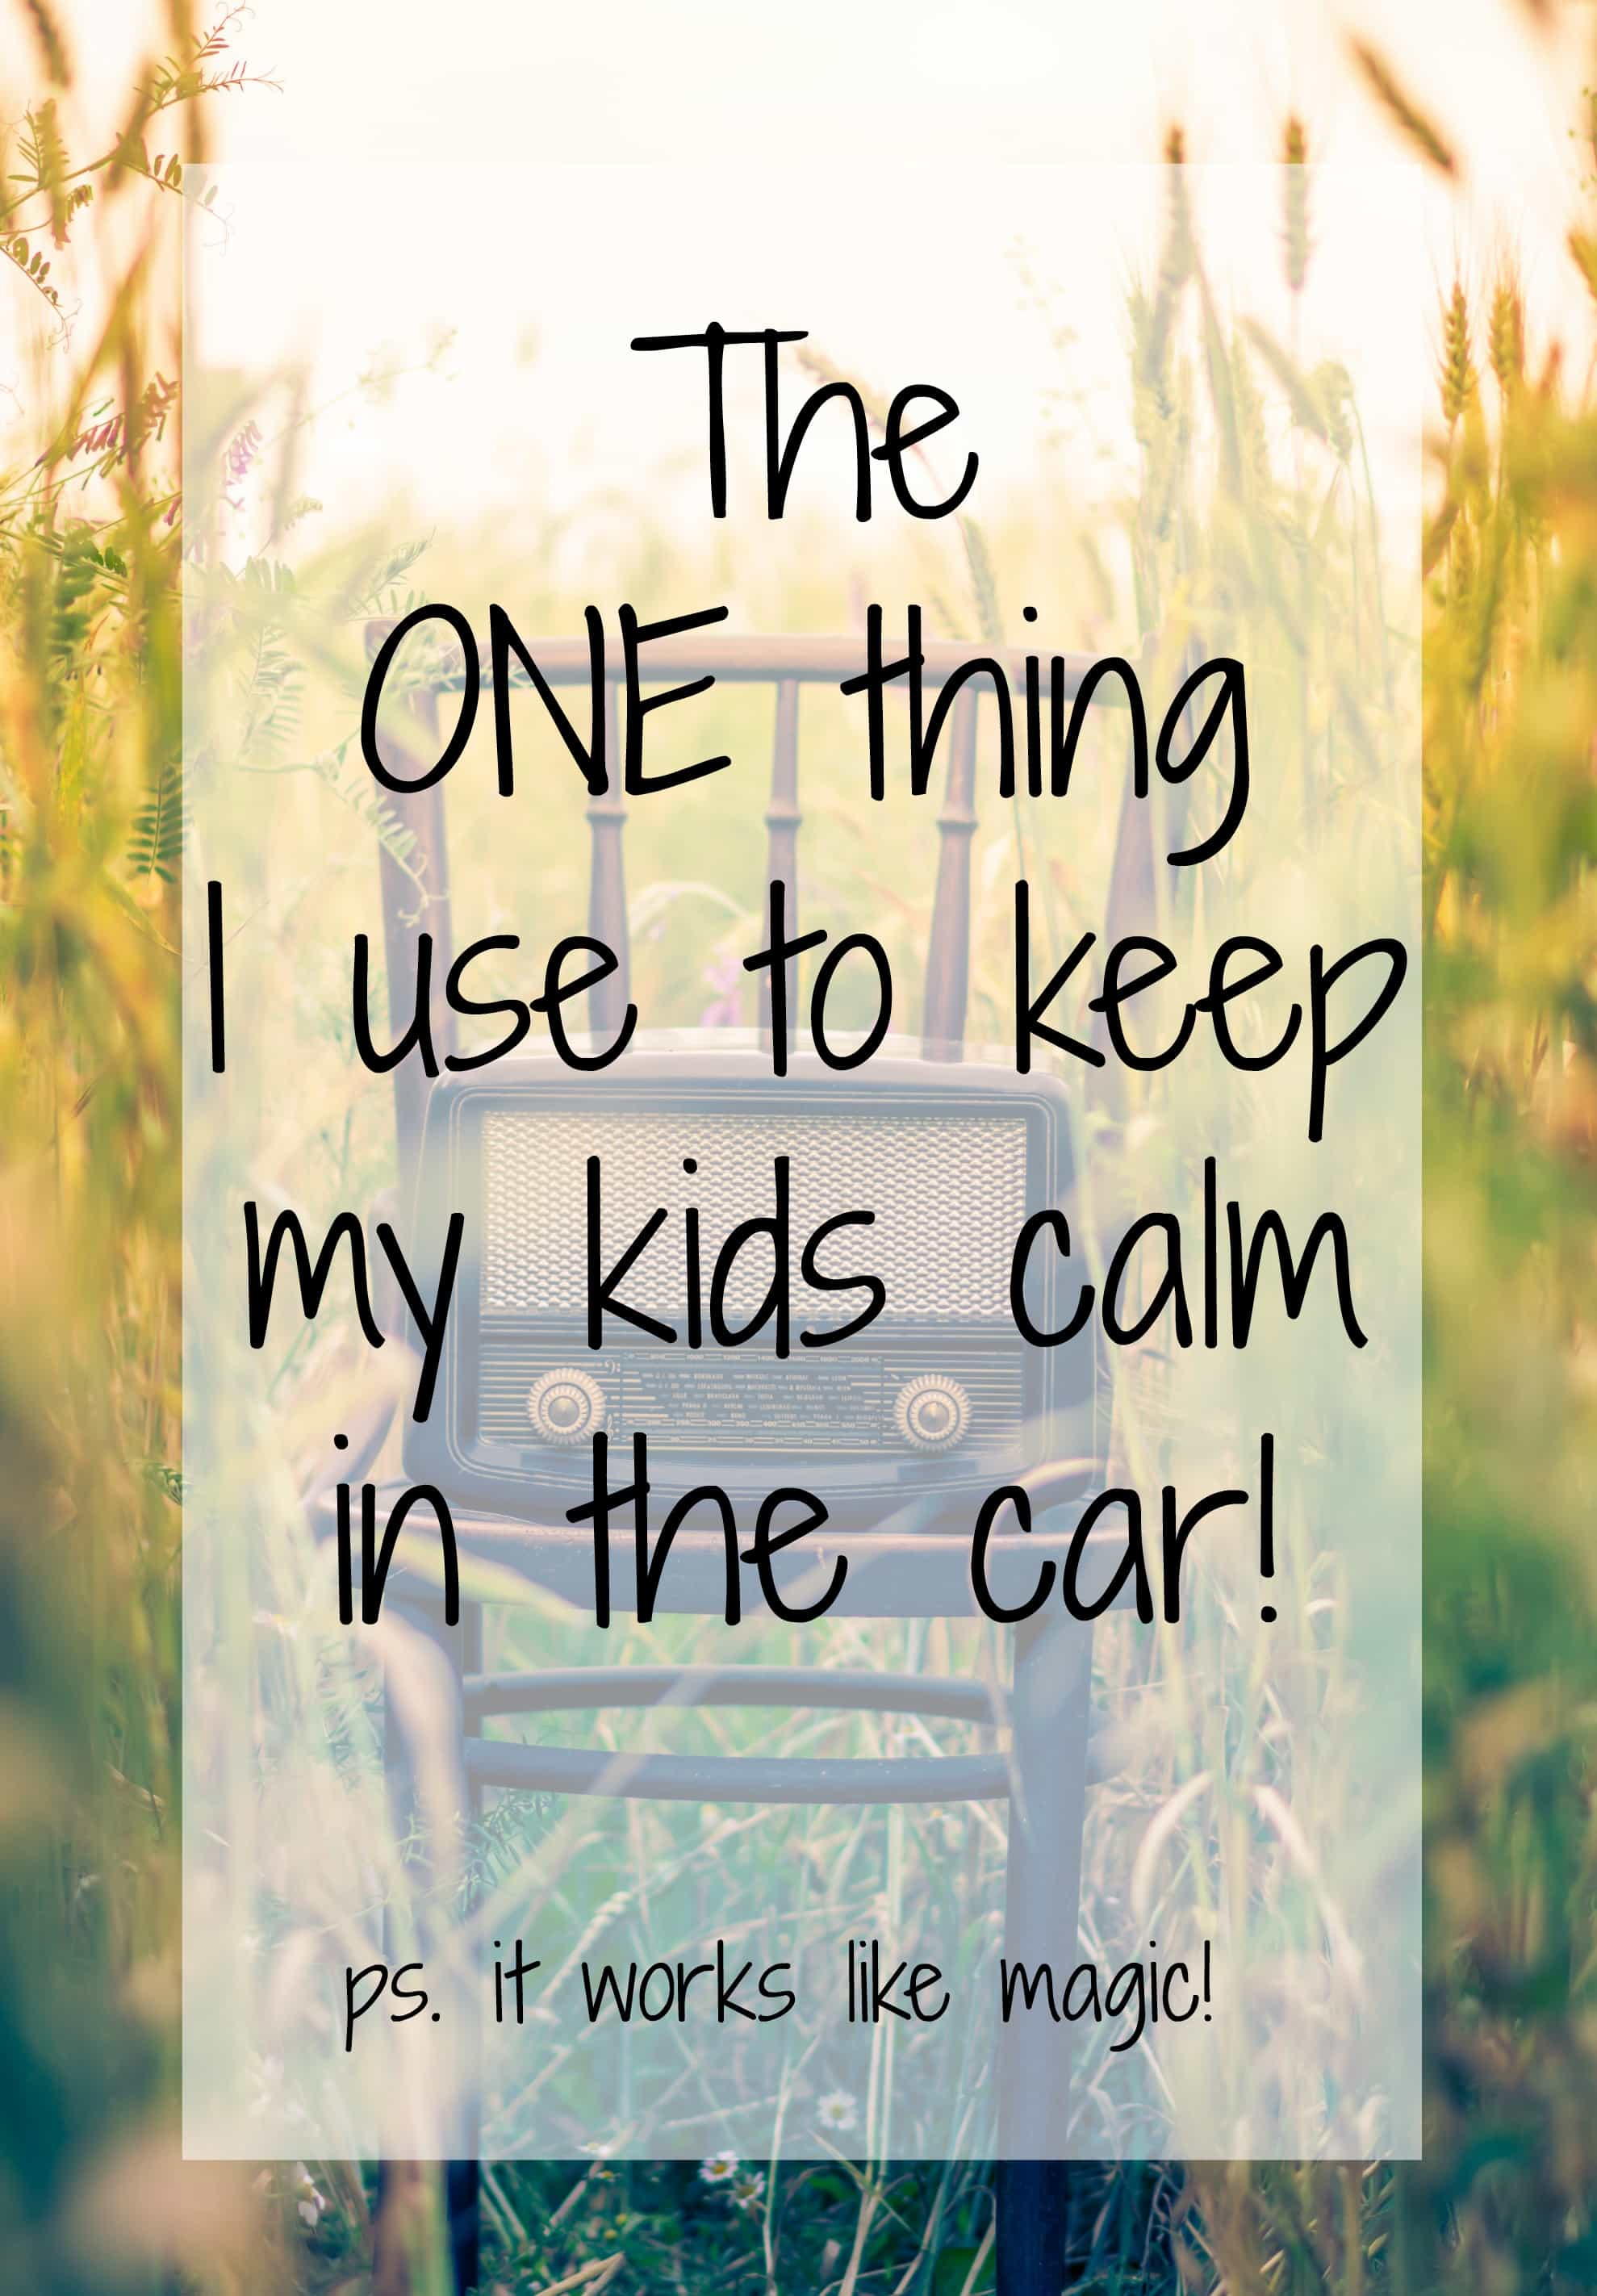 Are you looking for an EASY way to maintain peace between your children while in the car? Try my trick!